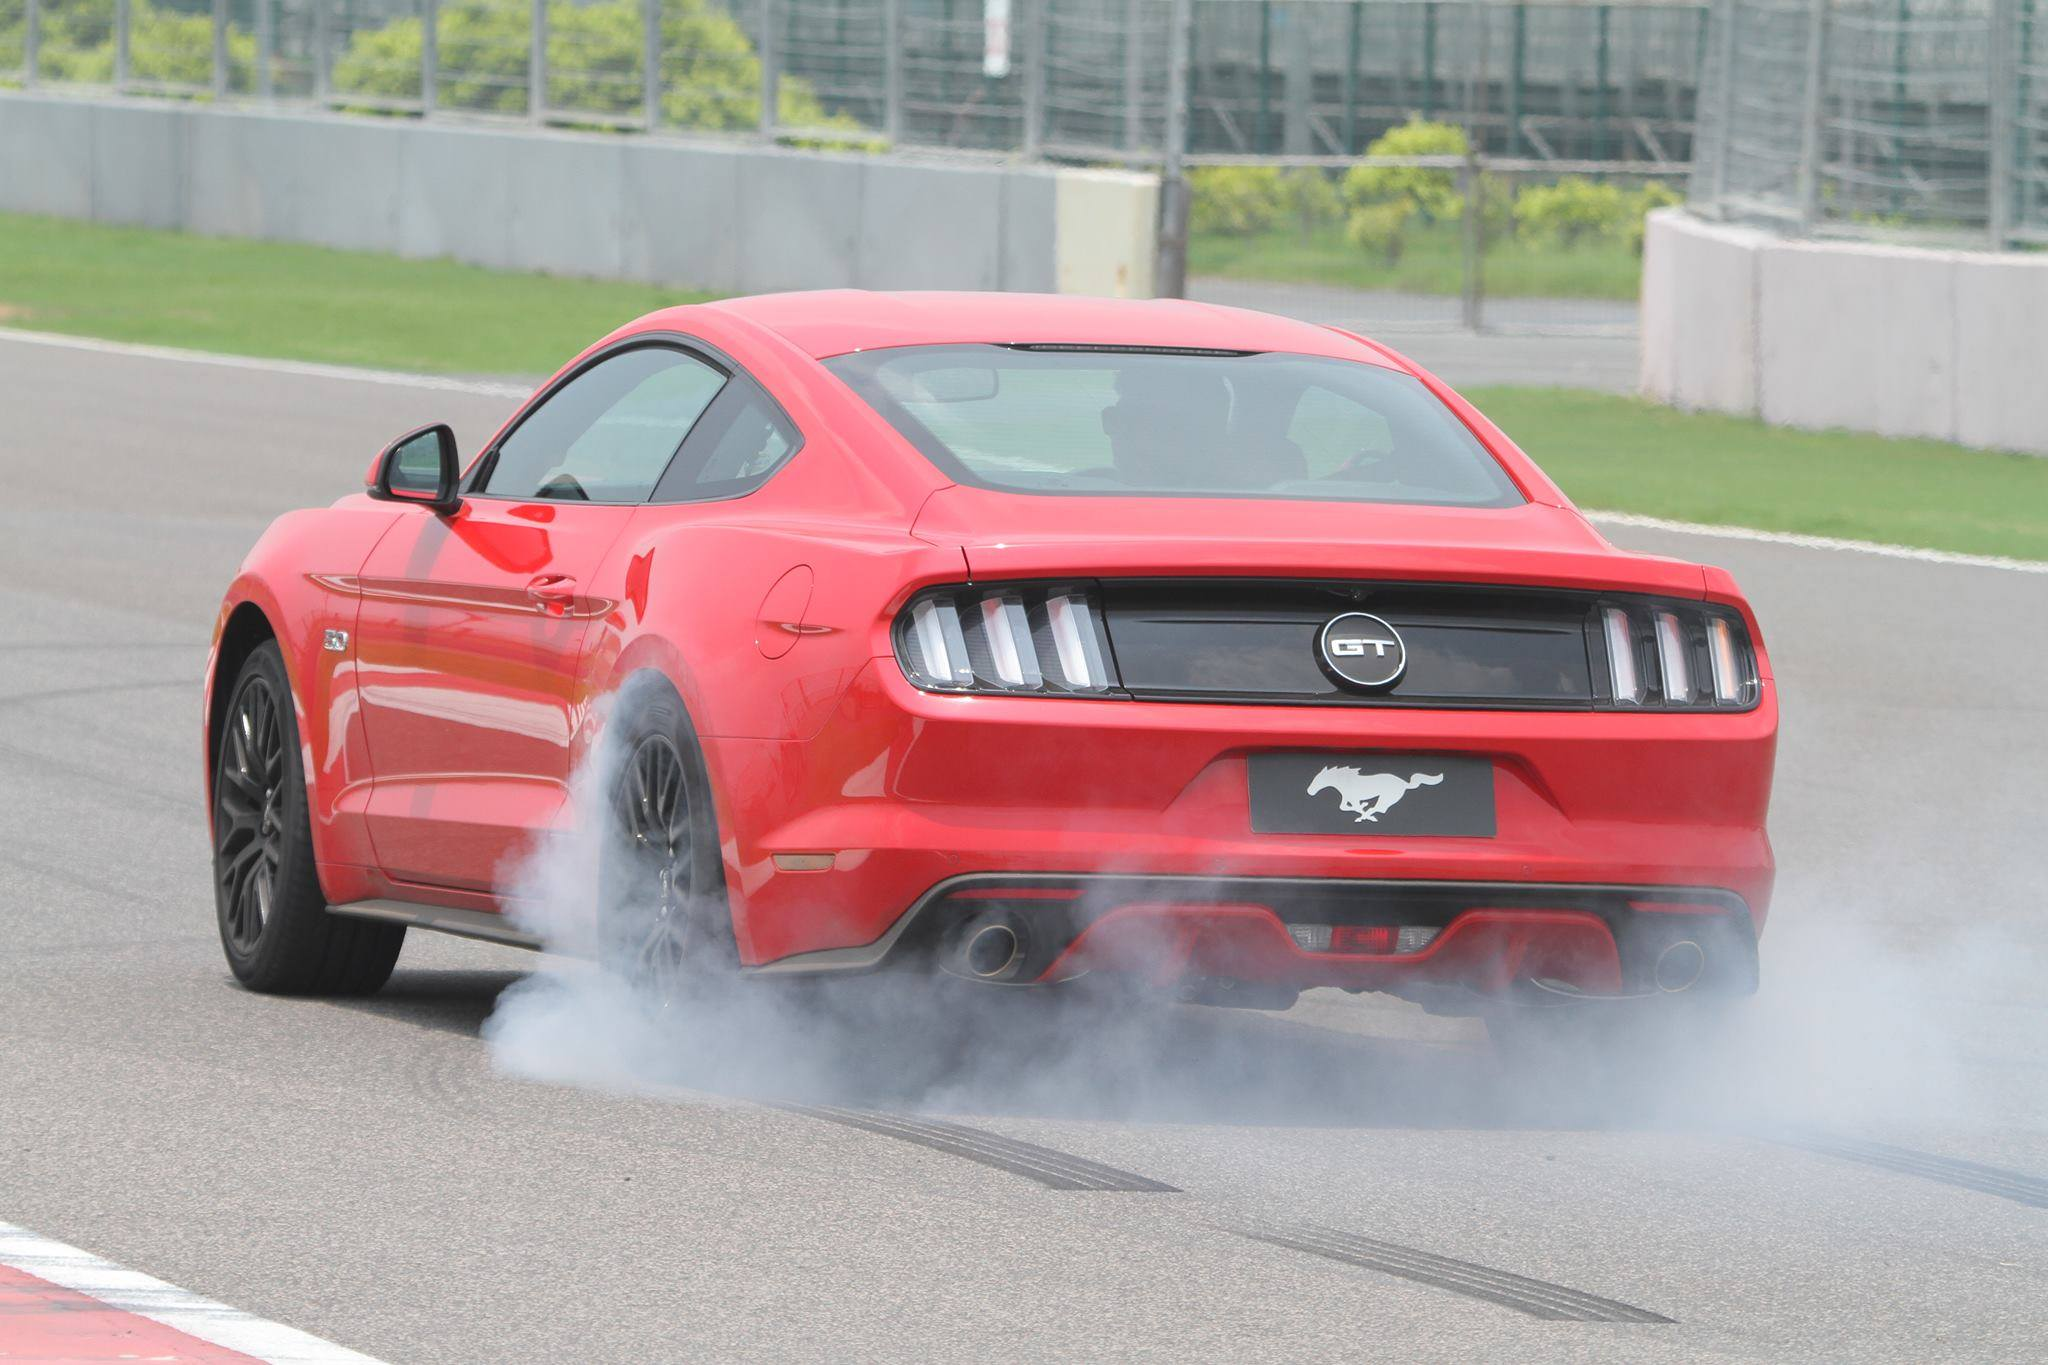 Ford Mustang Gt Makes Its Official Debut In India 5 0l V8 401hp